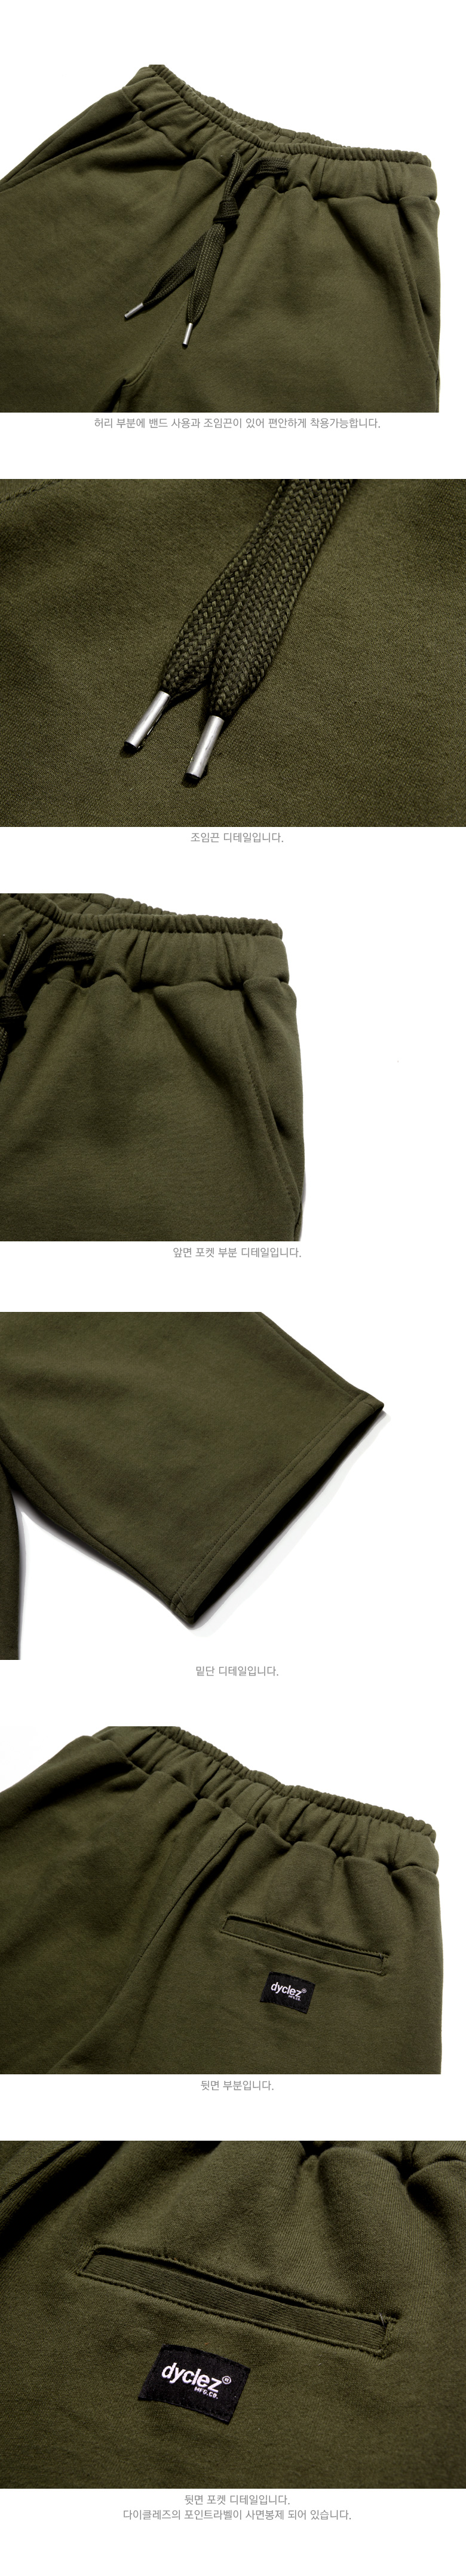 20180615_dy_classicjjuri_short_pants_detail_khaki_uk_02.jpg